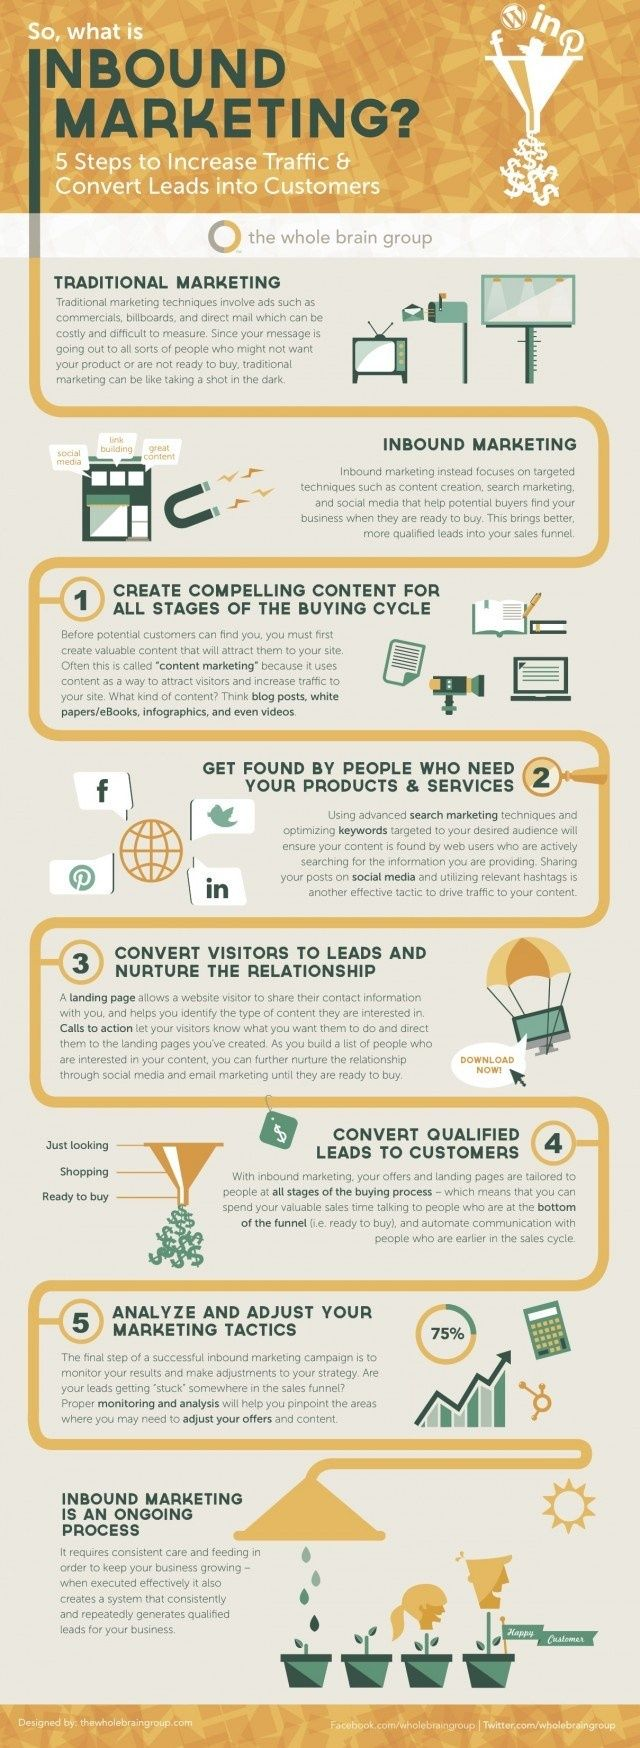 So, What is Inbound Marketing?